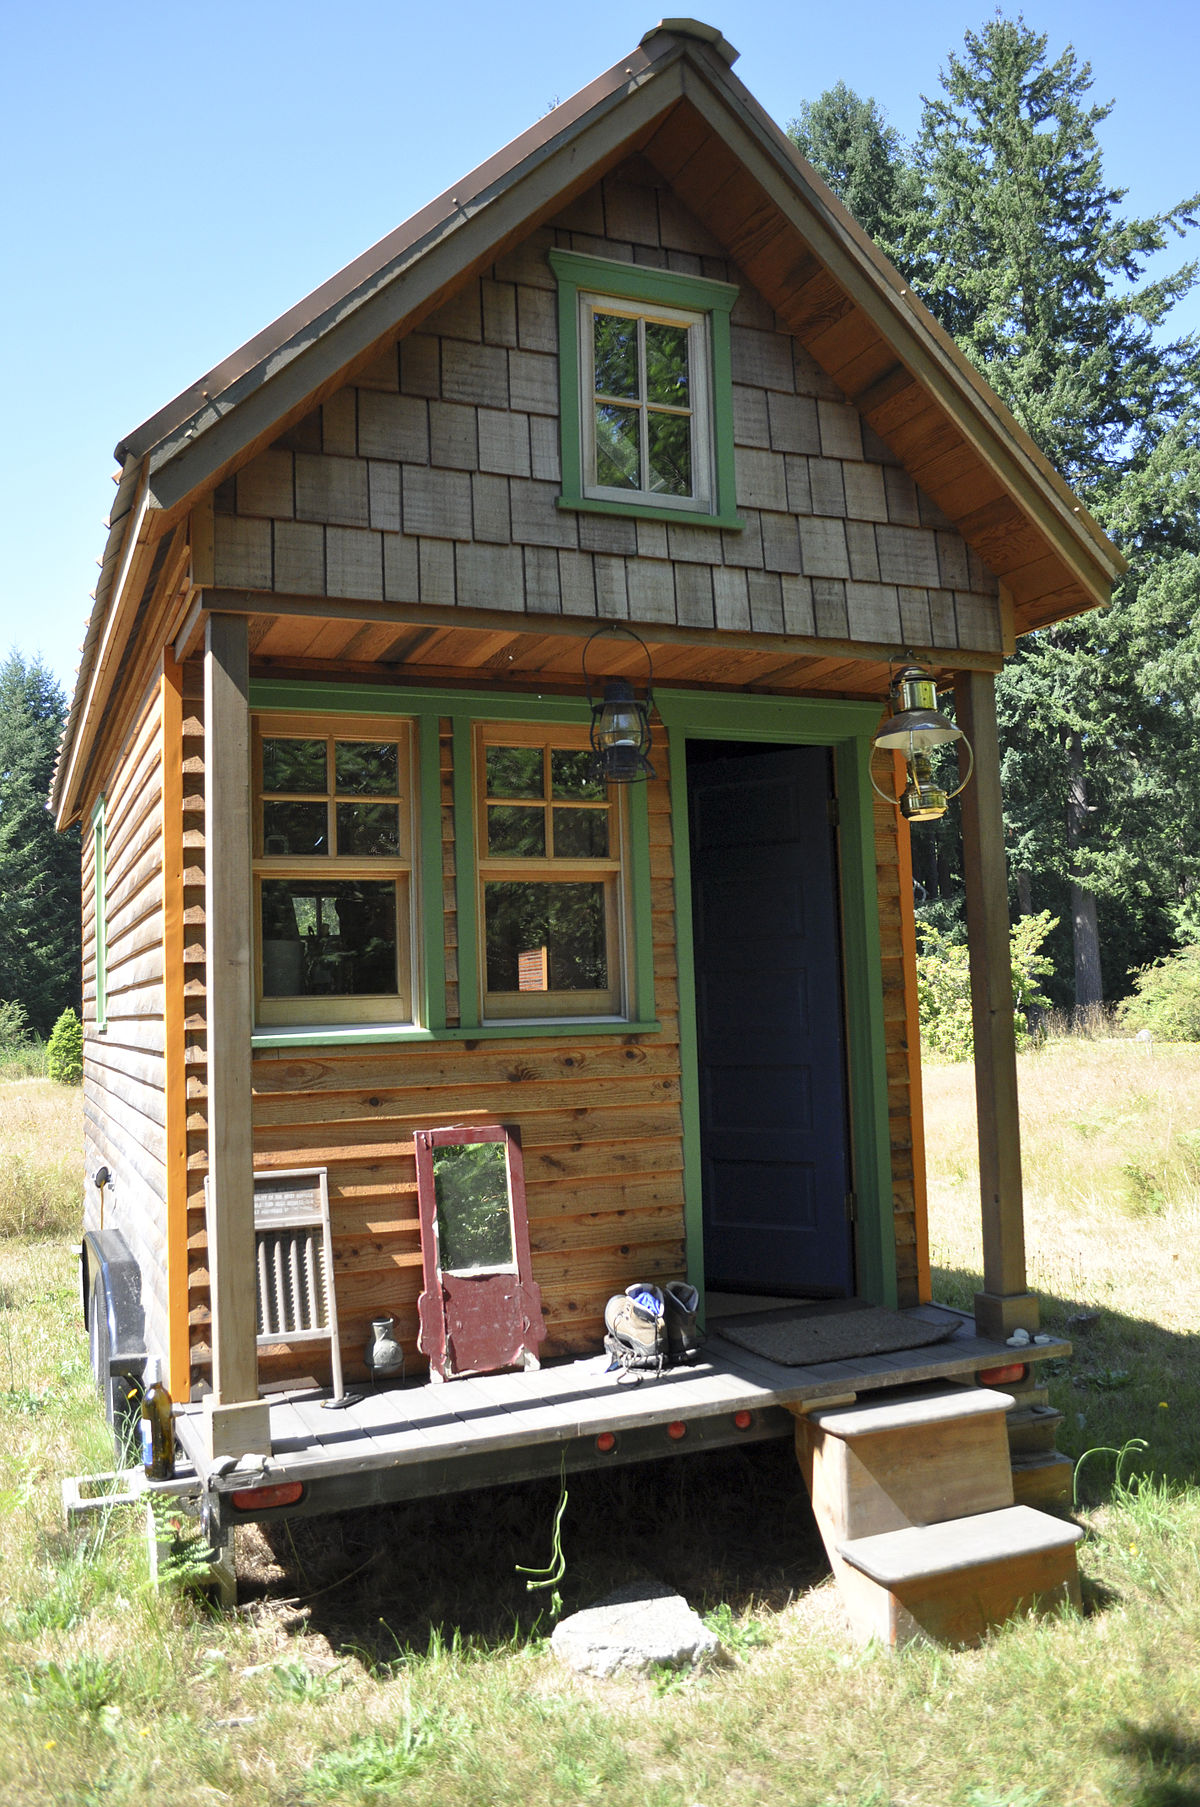 Smallest House In The World 2015 Inside tiny house movement - wikipedia